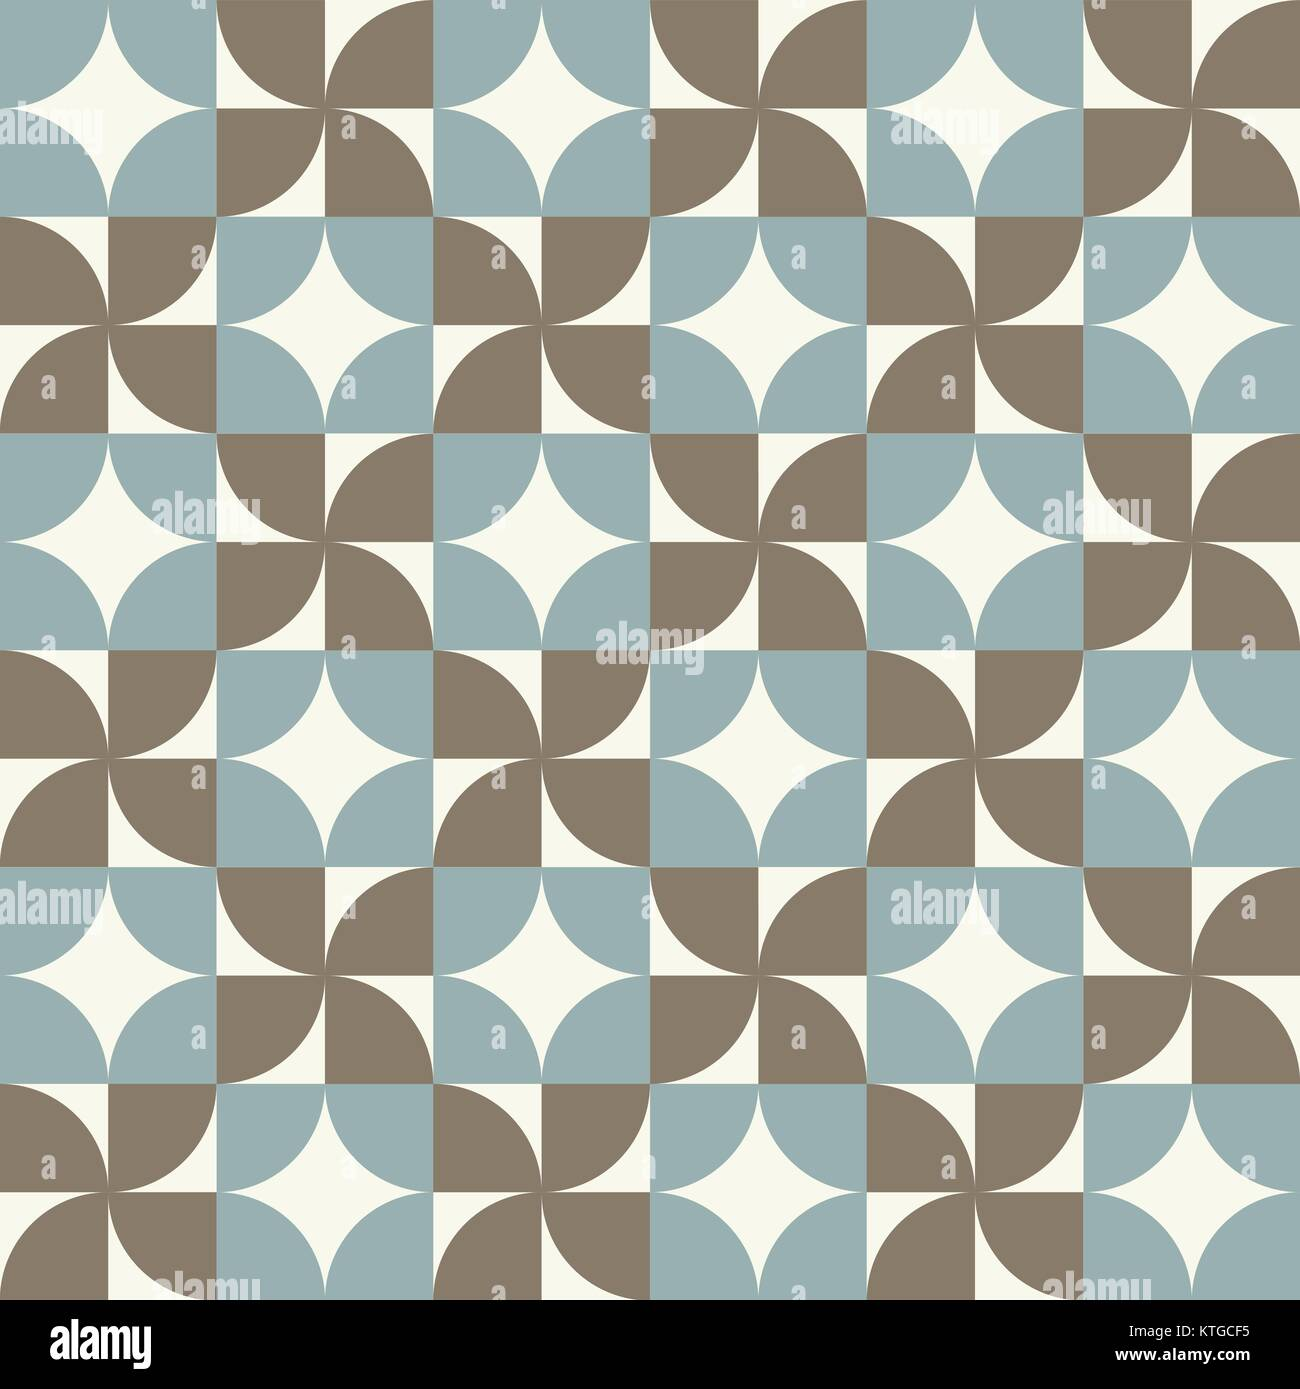 Seamless vintage worn out geometry assemble pattern background - Stock Vector